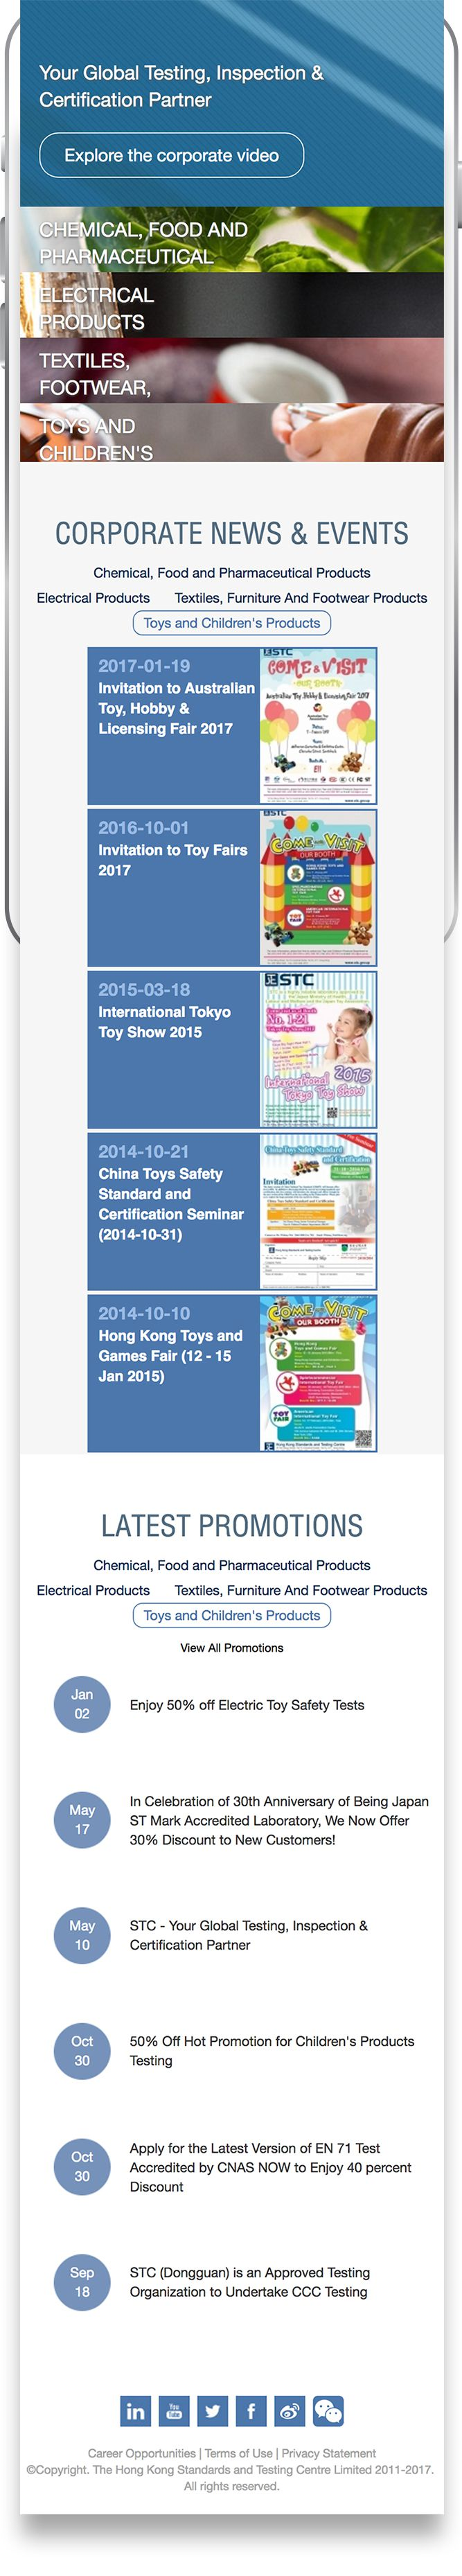 Hong Kong Standards and Testing Centre